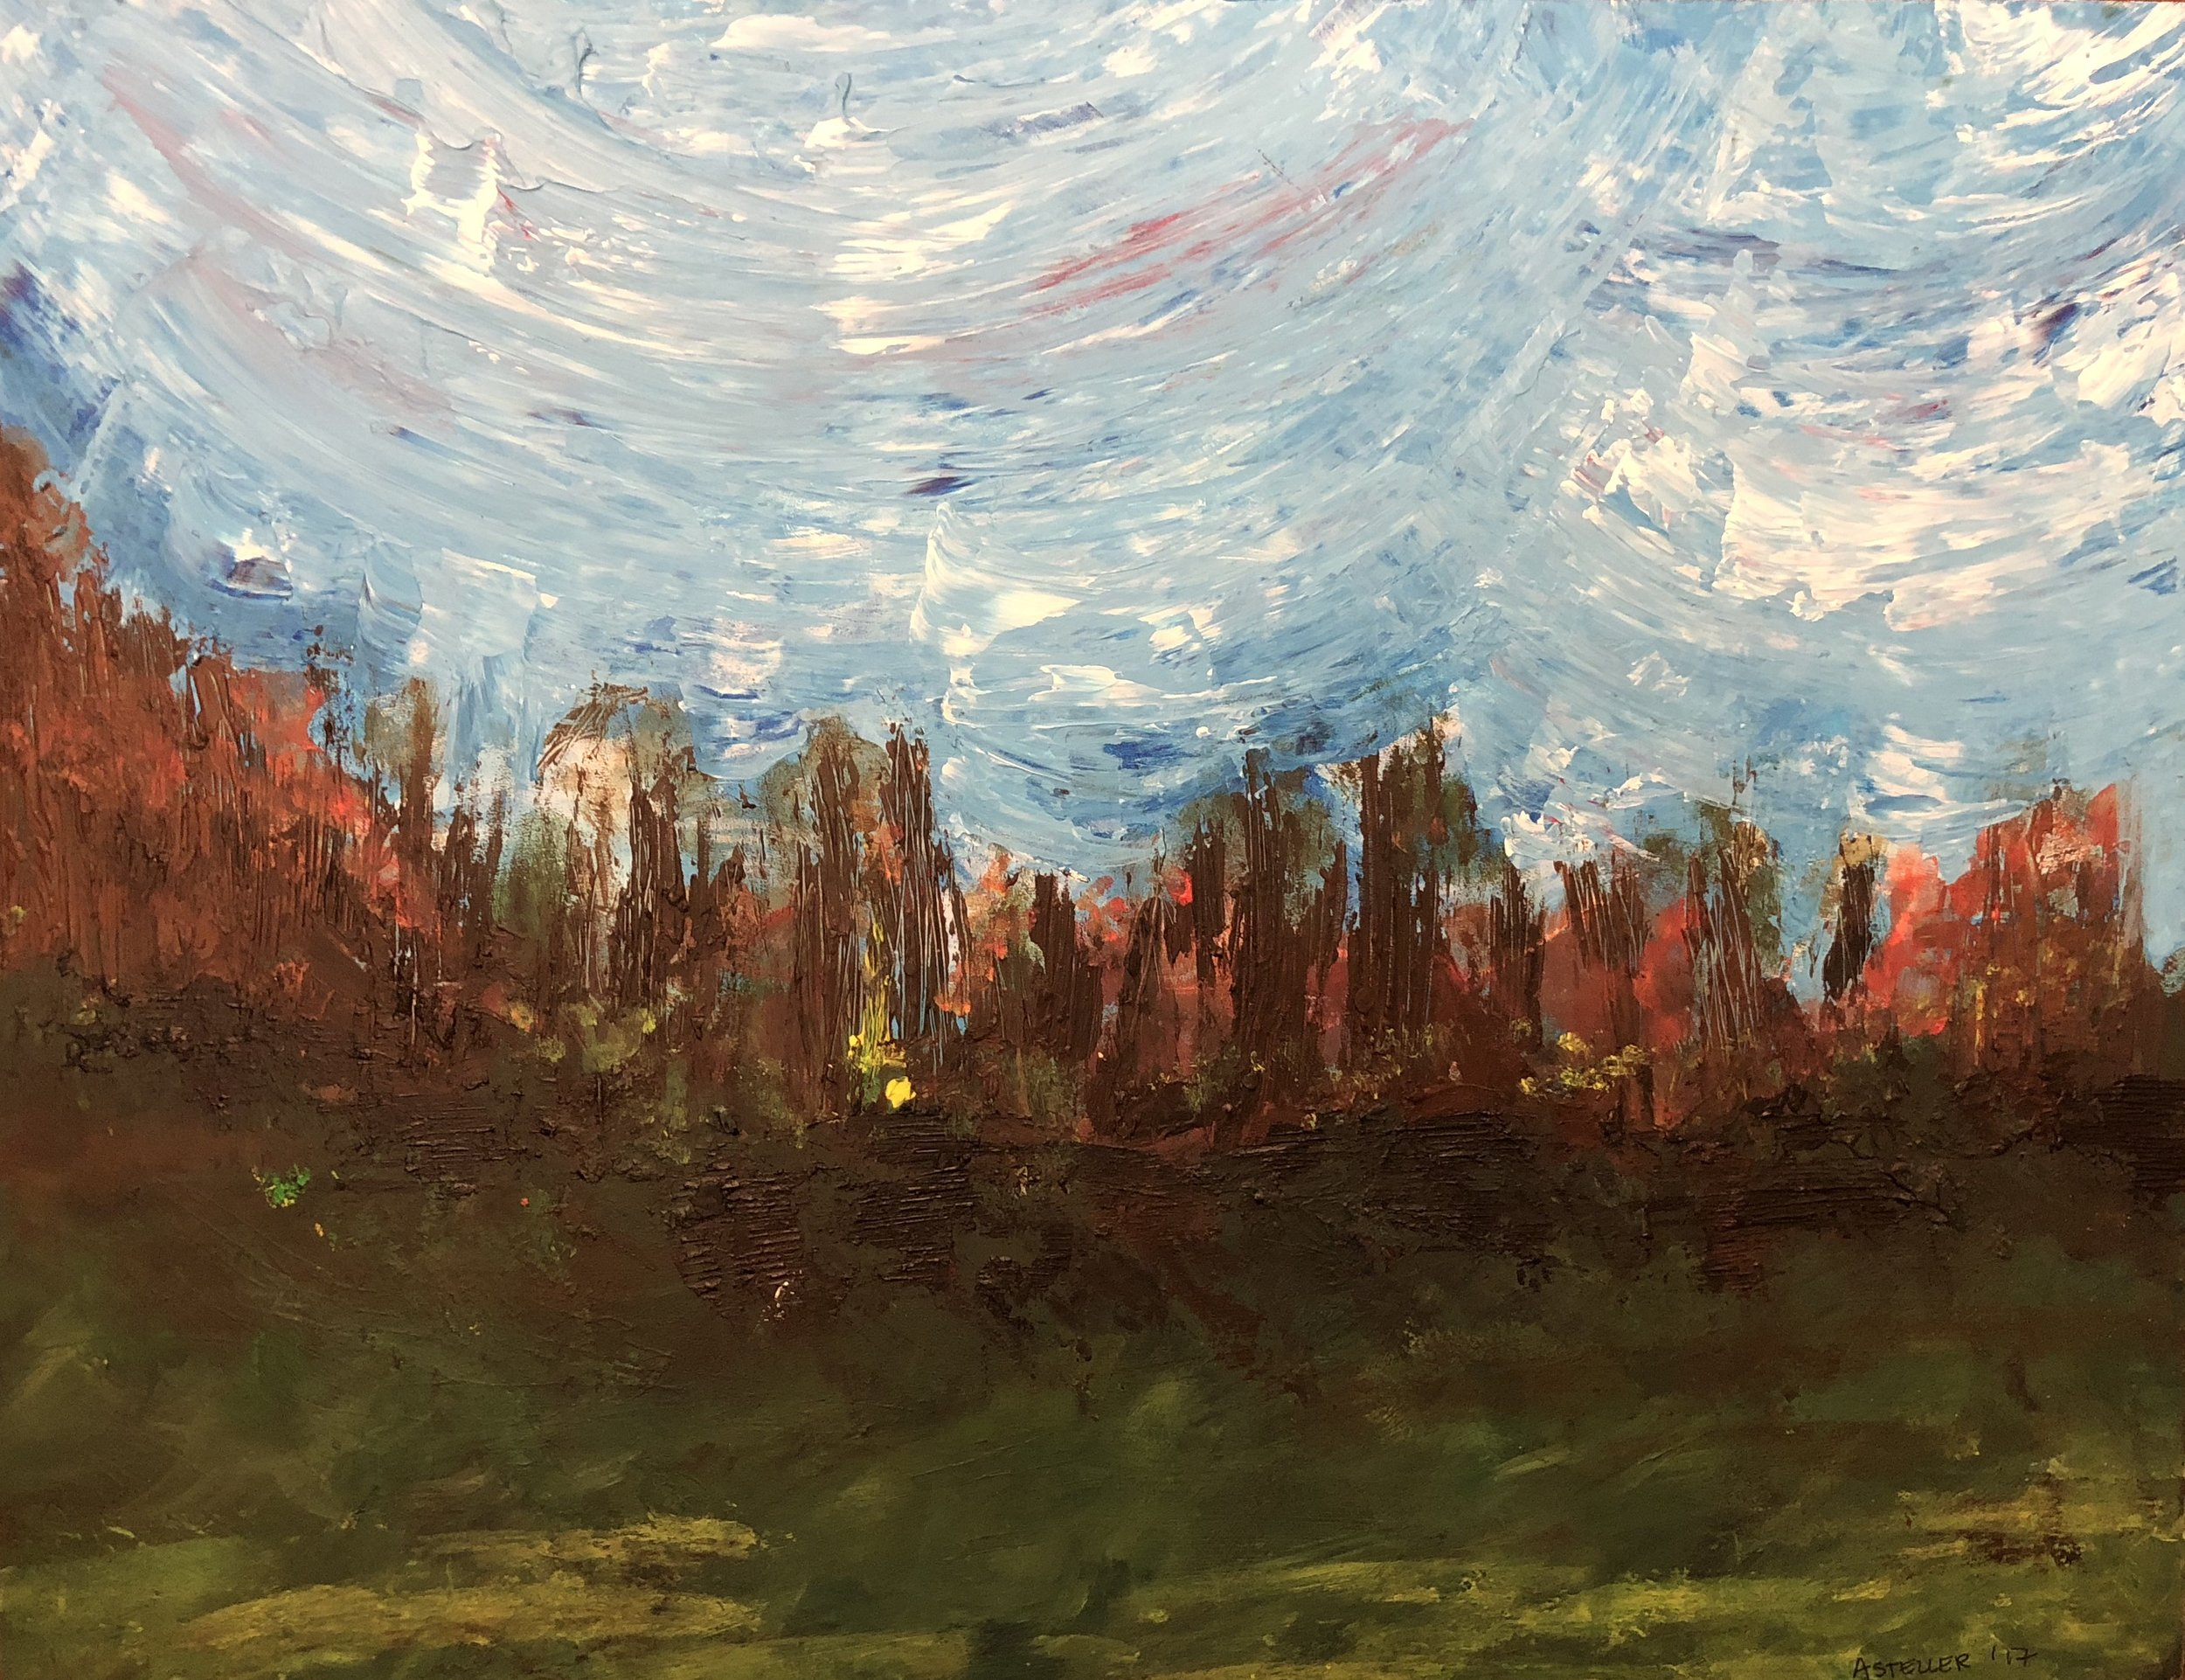 An impressionistic painting by Summit Christian Academy Freshman Ashlyn Steller was recently selected as the 2018 Senate Art Exhibit Winner for Missouri Senate District 8. The printed painting will be displayed at the Missouri State Capitol from February 1 through the end of the year.